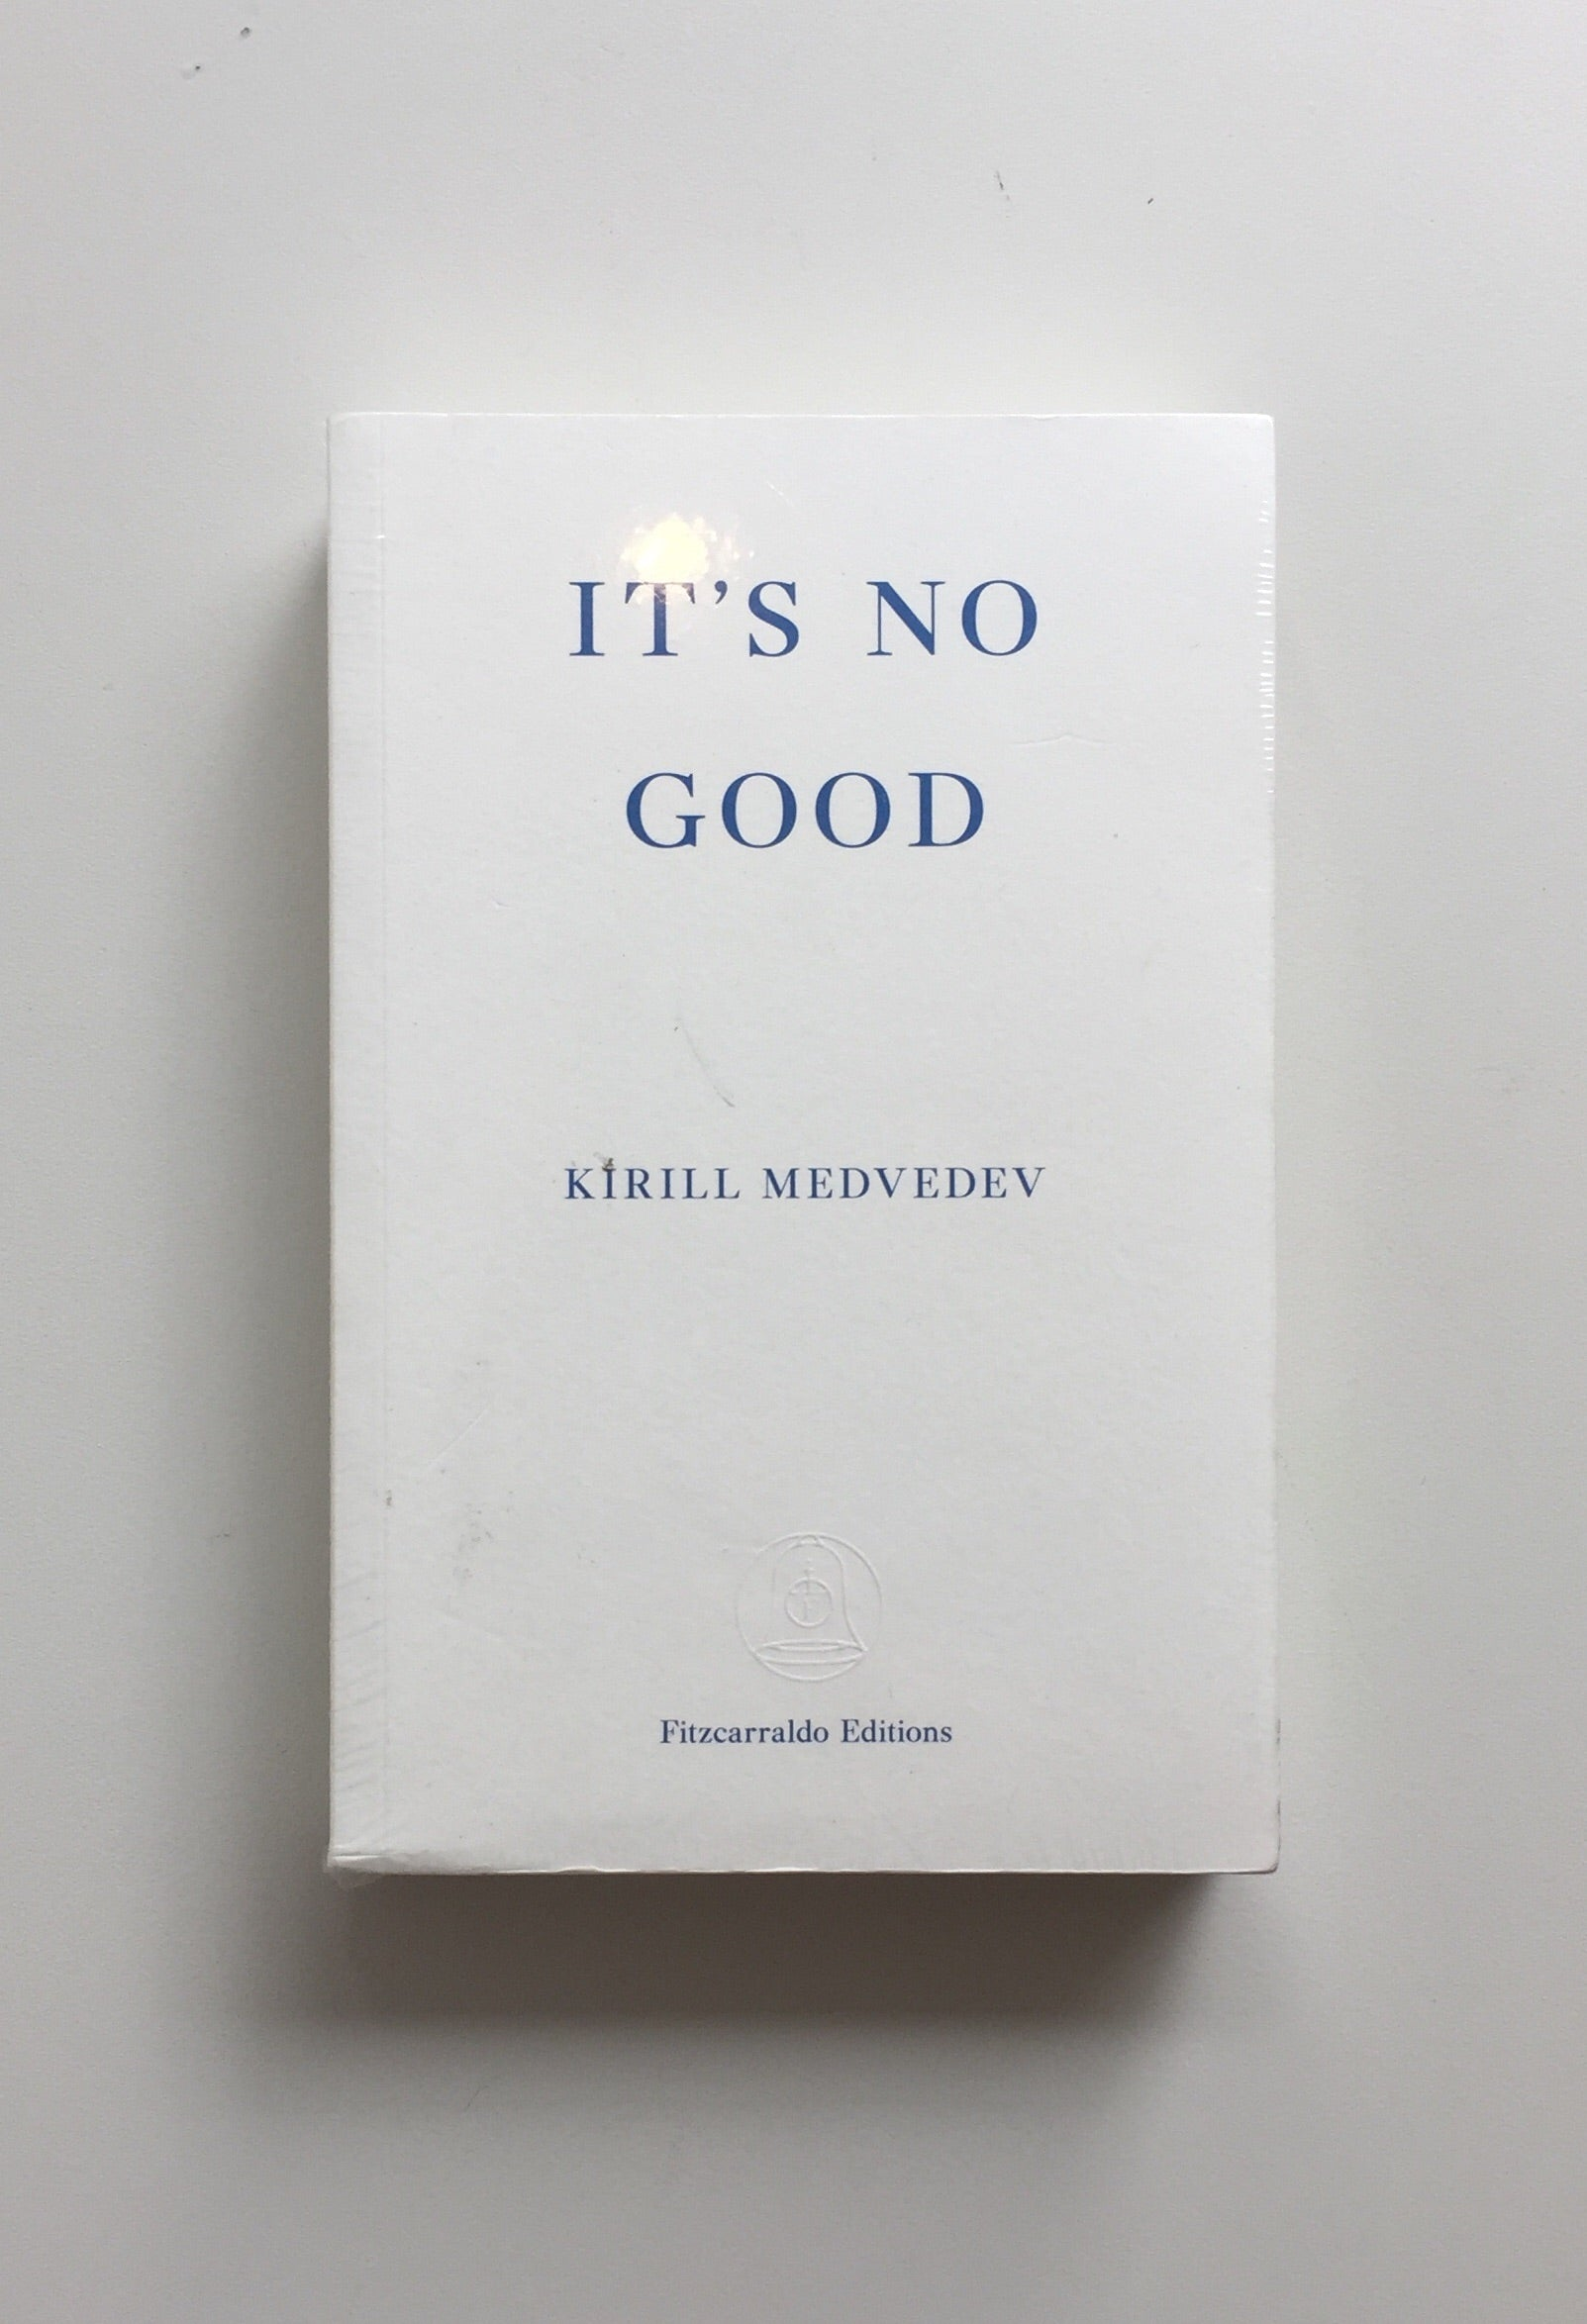 It's No Good by Kirill Medvedev